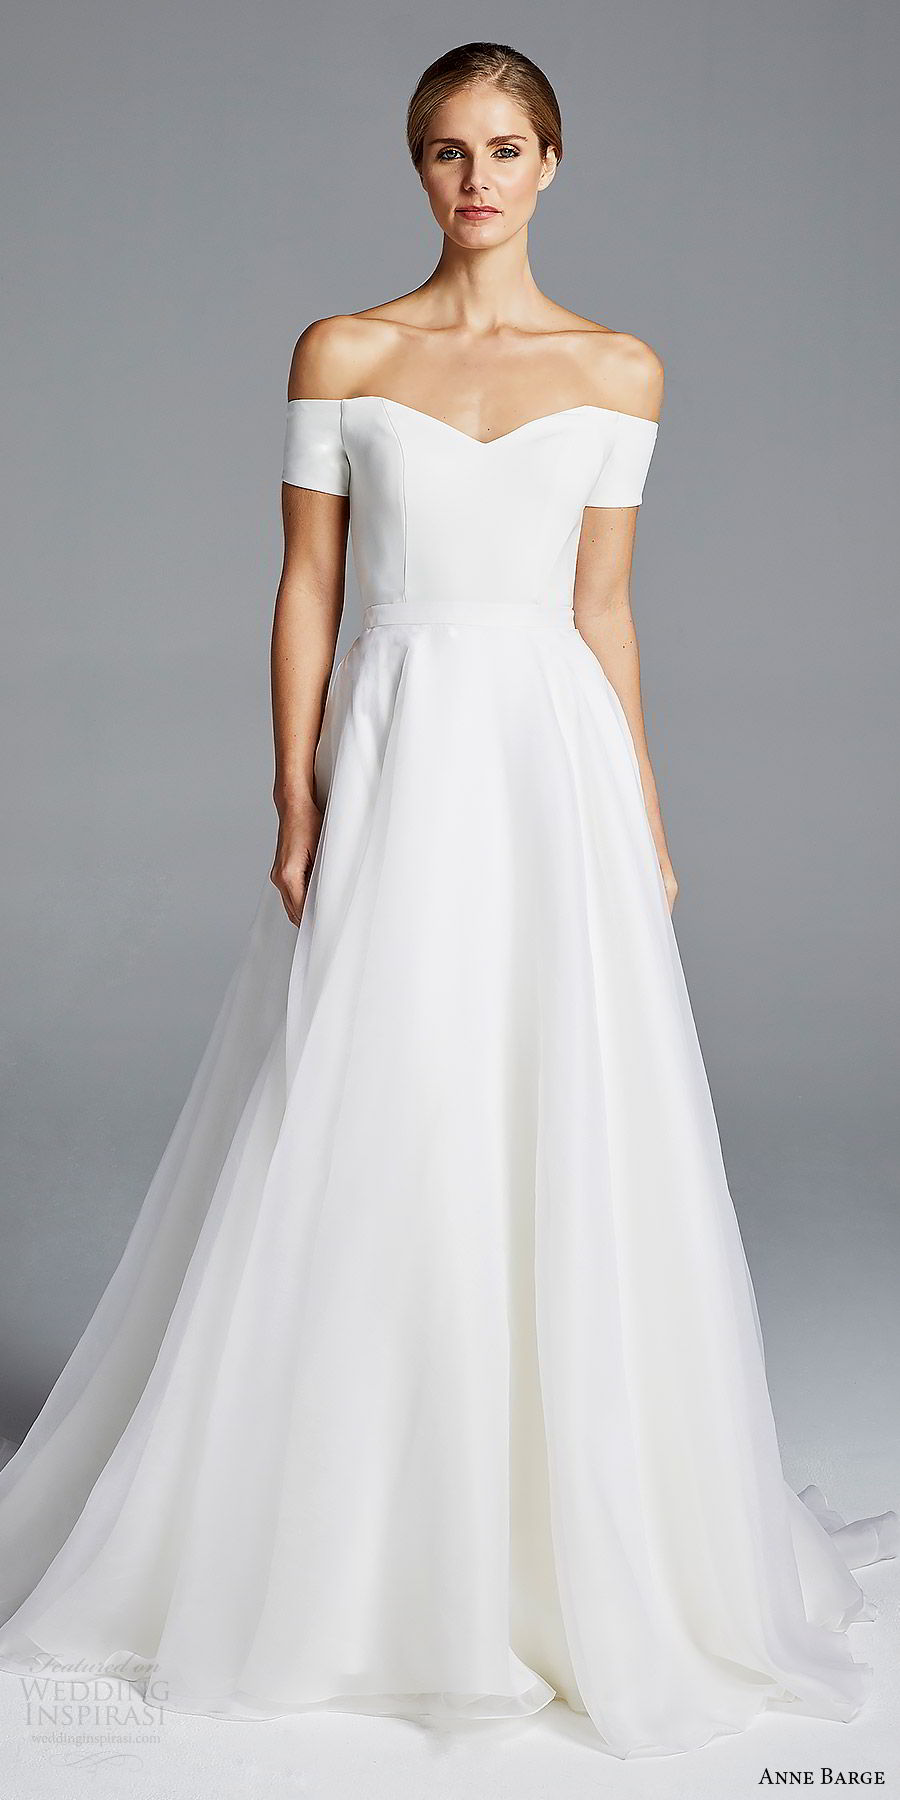 anne barge bridal spring 2019 off shoulder short sleeves sweetheart neckline minimally embellished sheath wedding dress a line overskirt (jolie) mv chic modern elegant